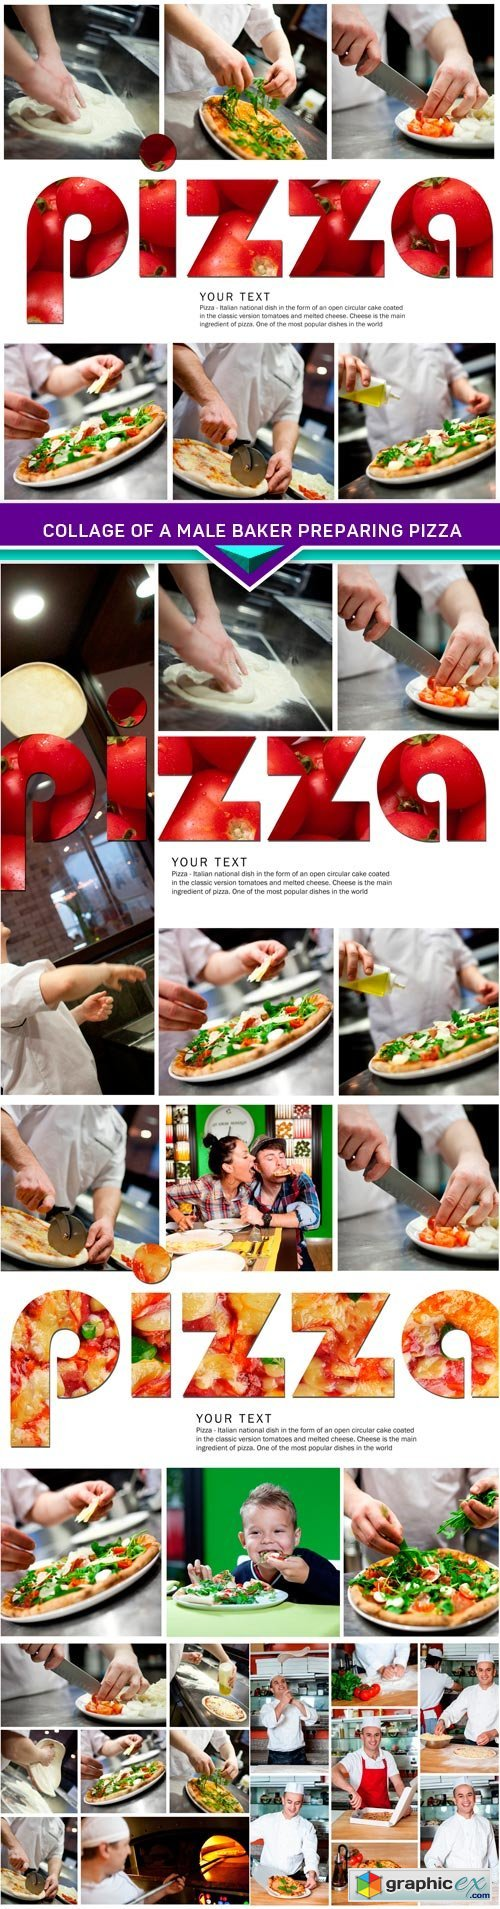 Collage of a male baker preparing pizza 5x JPEG